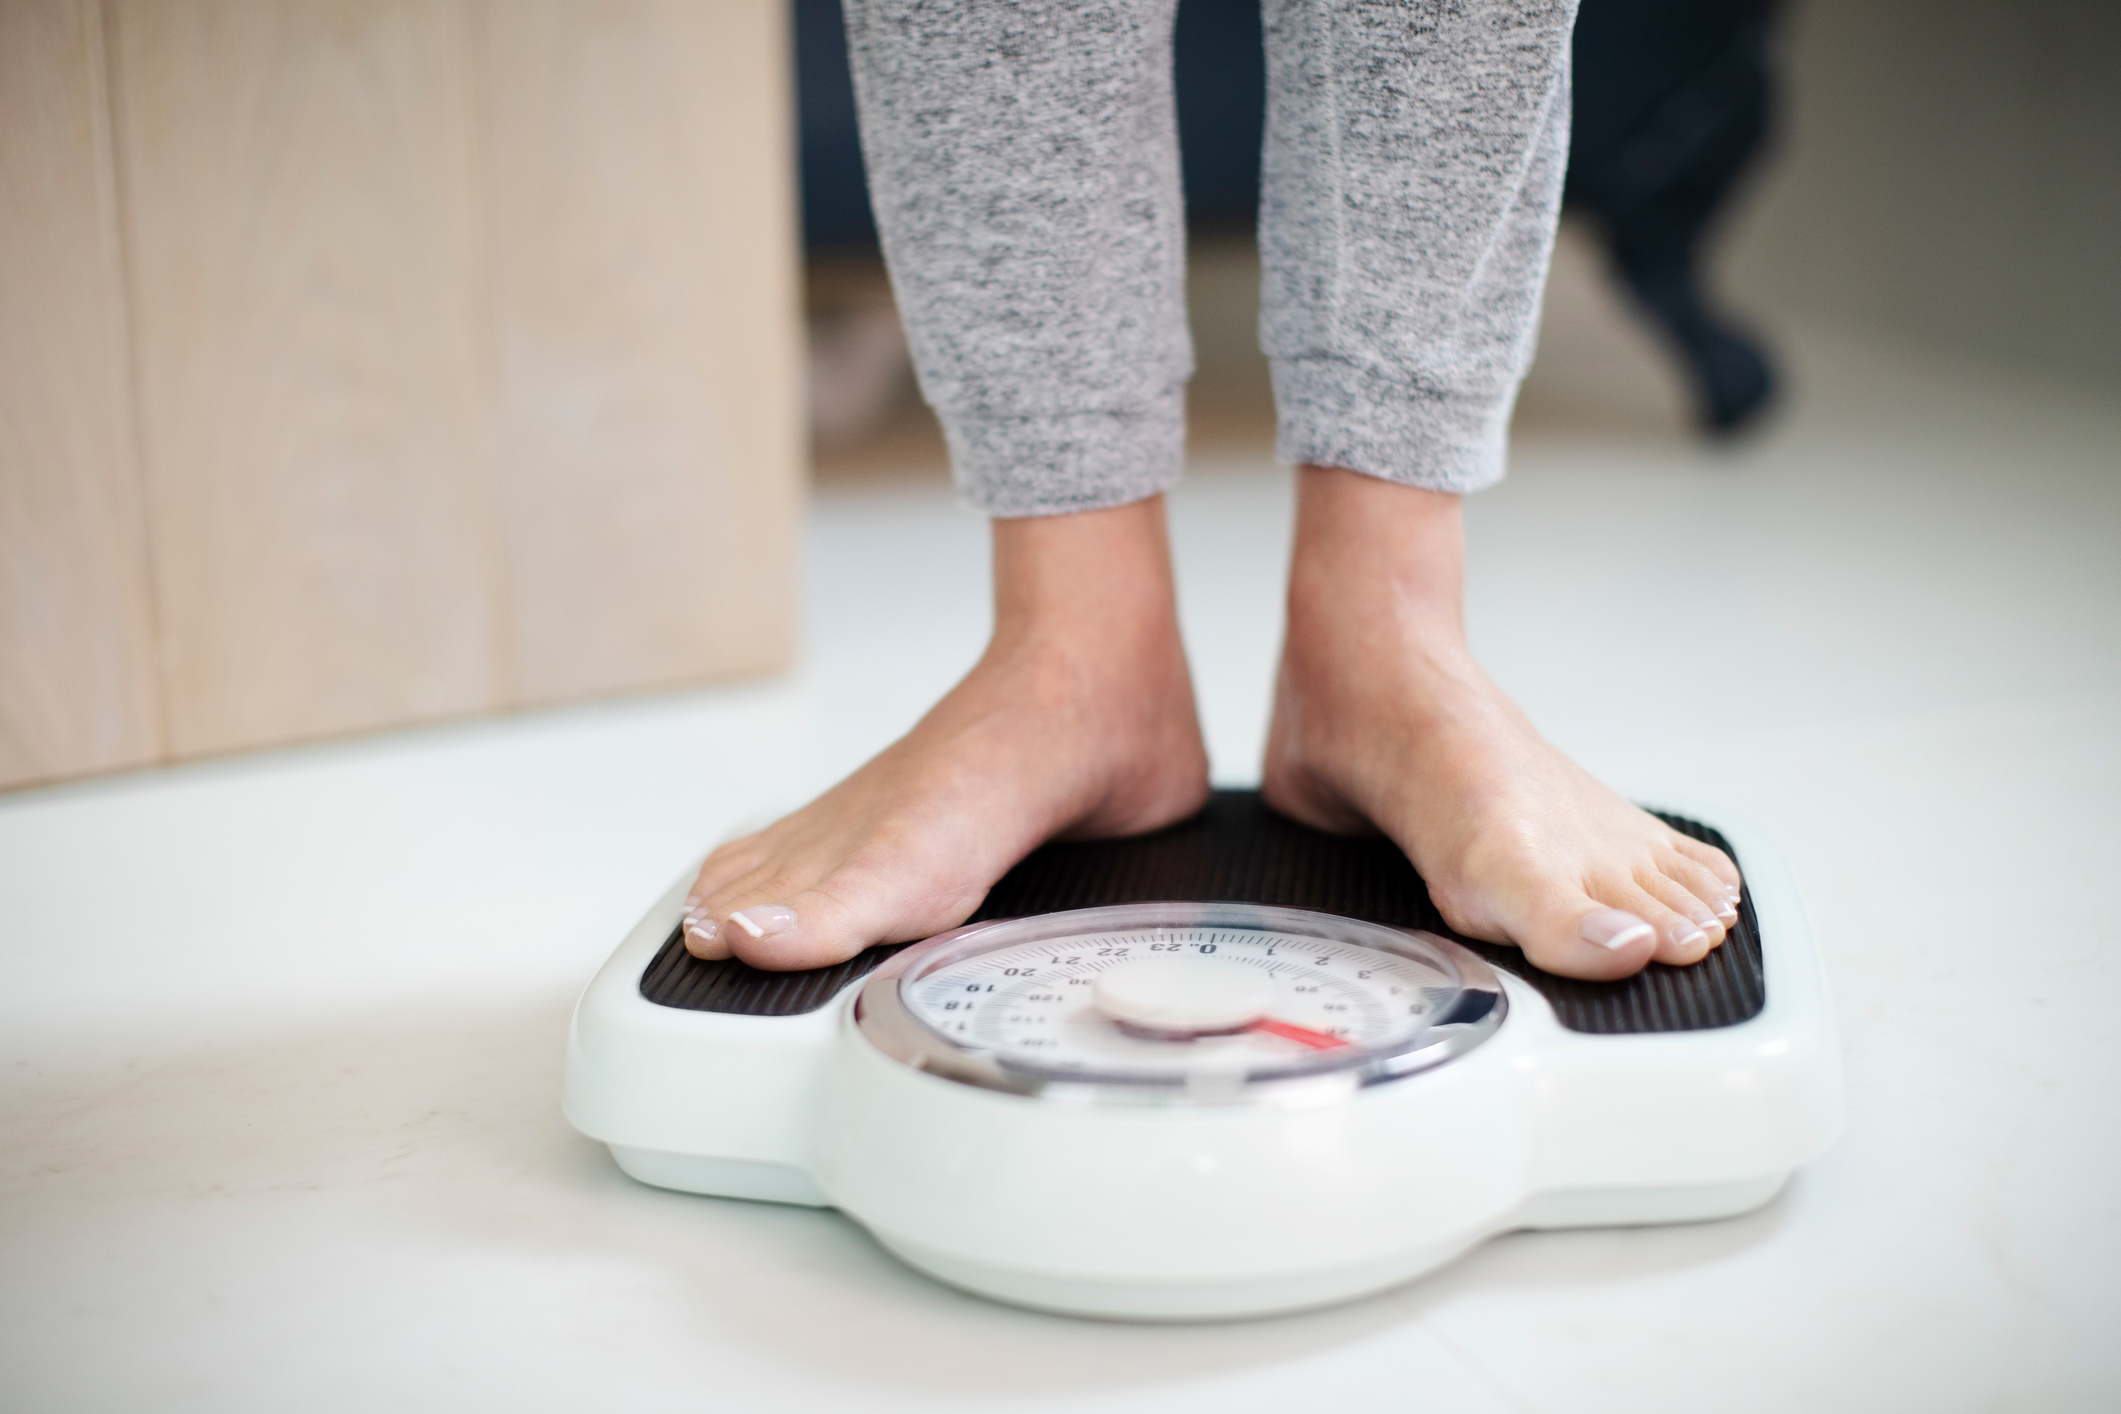 Article image for 'Reach for nature first': How to avoid self-isolation weight gain